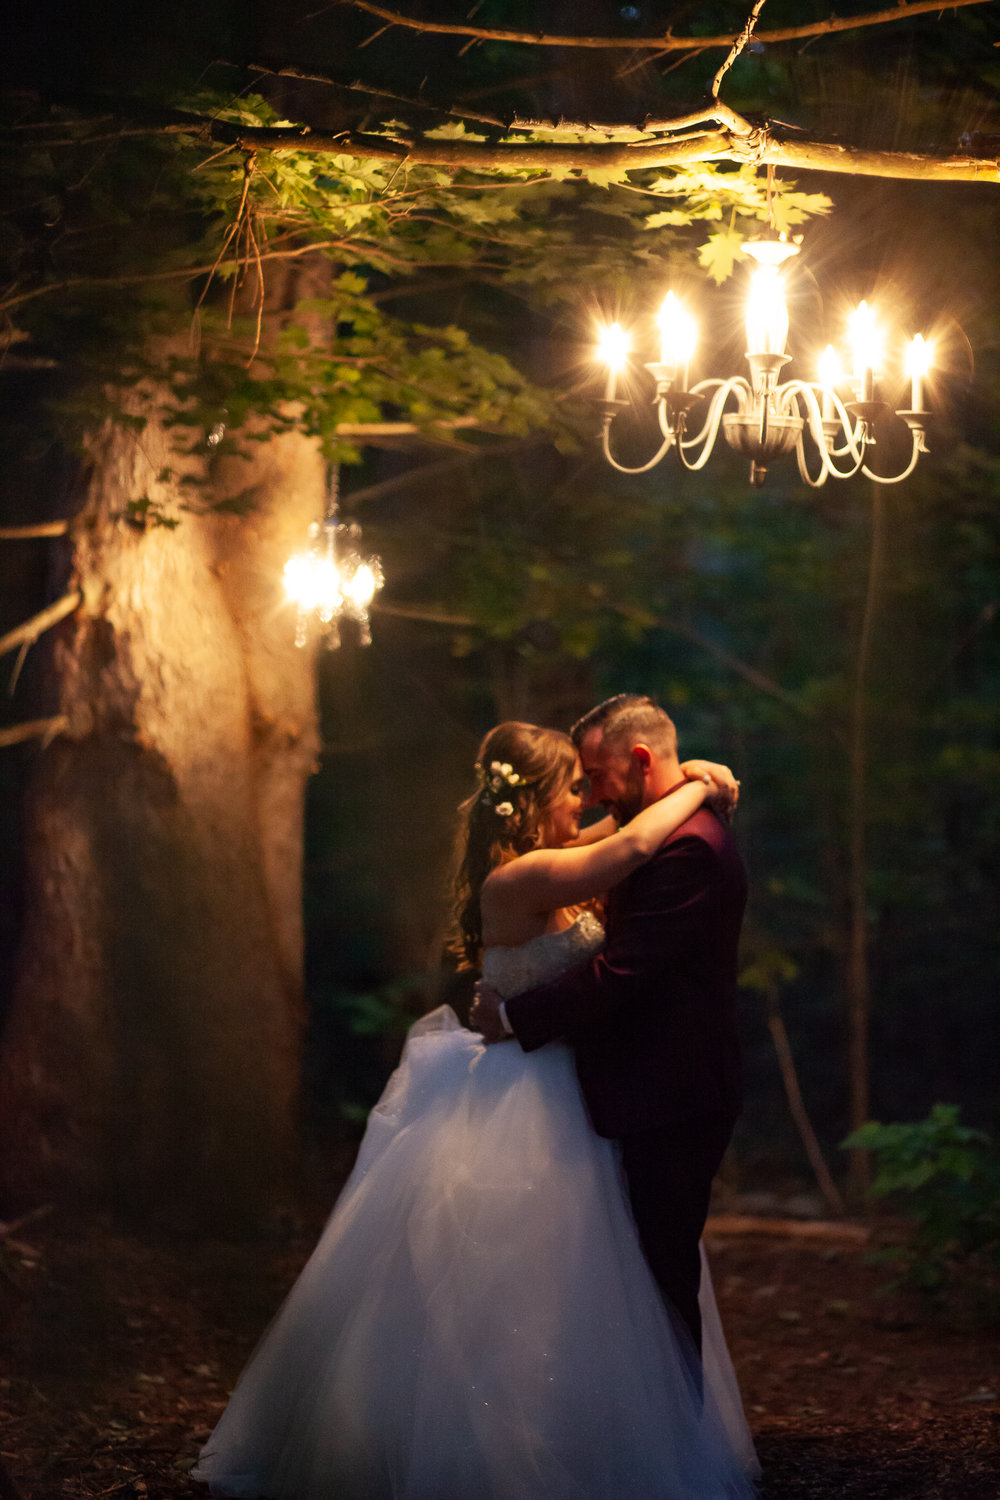 Amy D Photography- Bride and Groom- Wedding Poses- Muskoka Wedding- Barrie Wedding Photographer- Best Wedding Photographer- Muskoka Wedding Photography- Bride Pose- Groom Pose-4.jpg